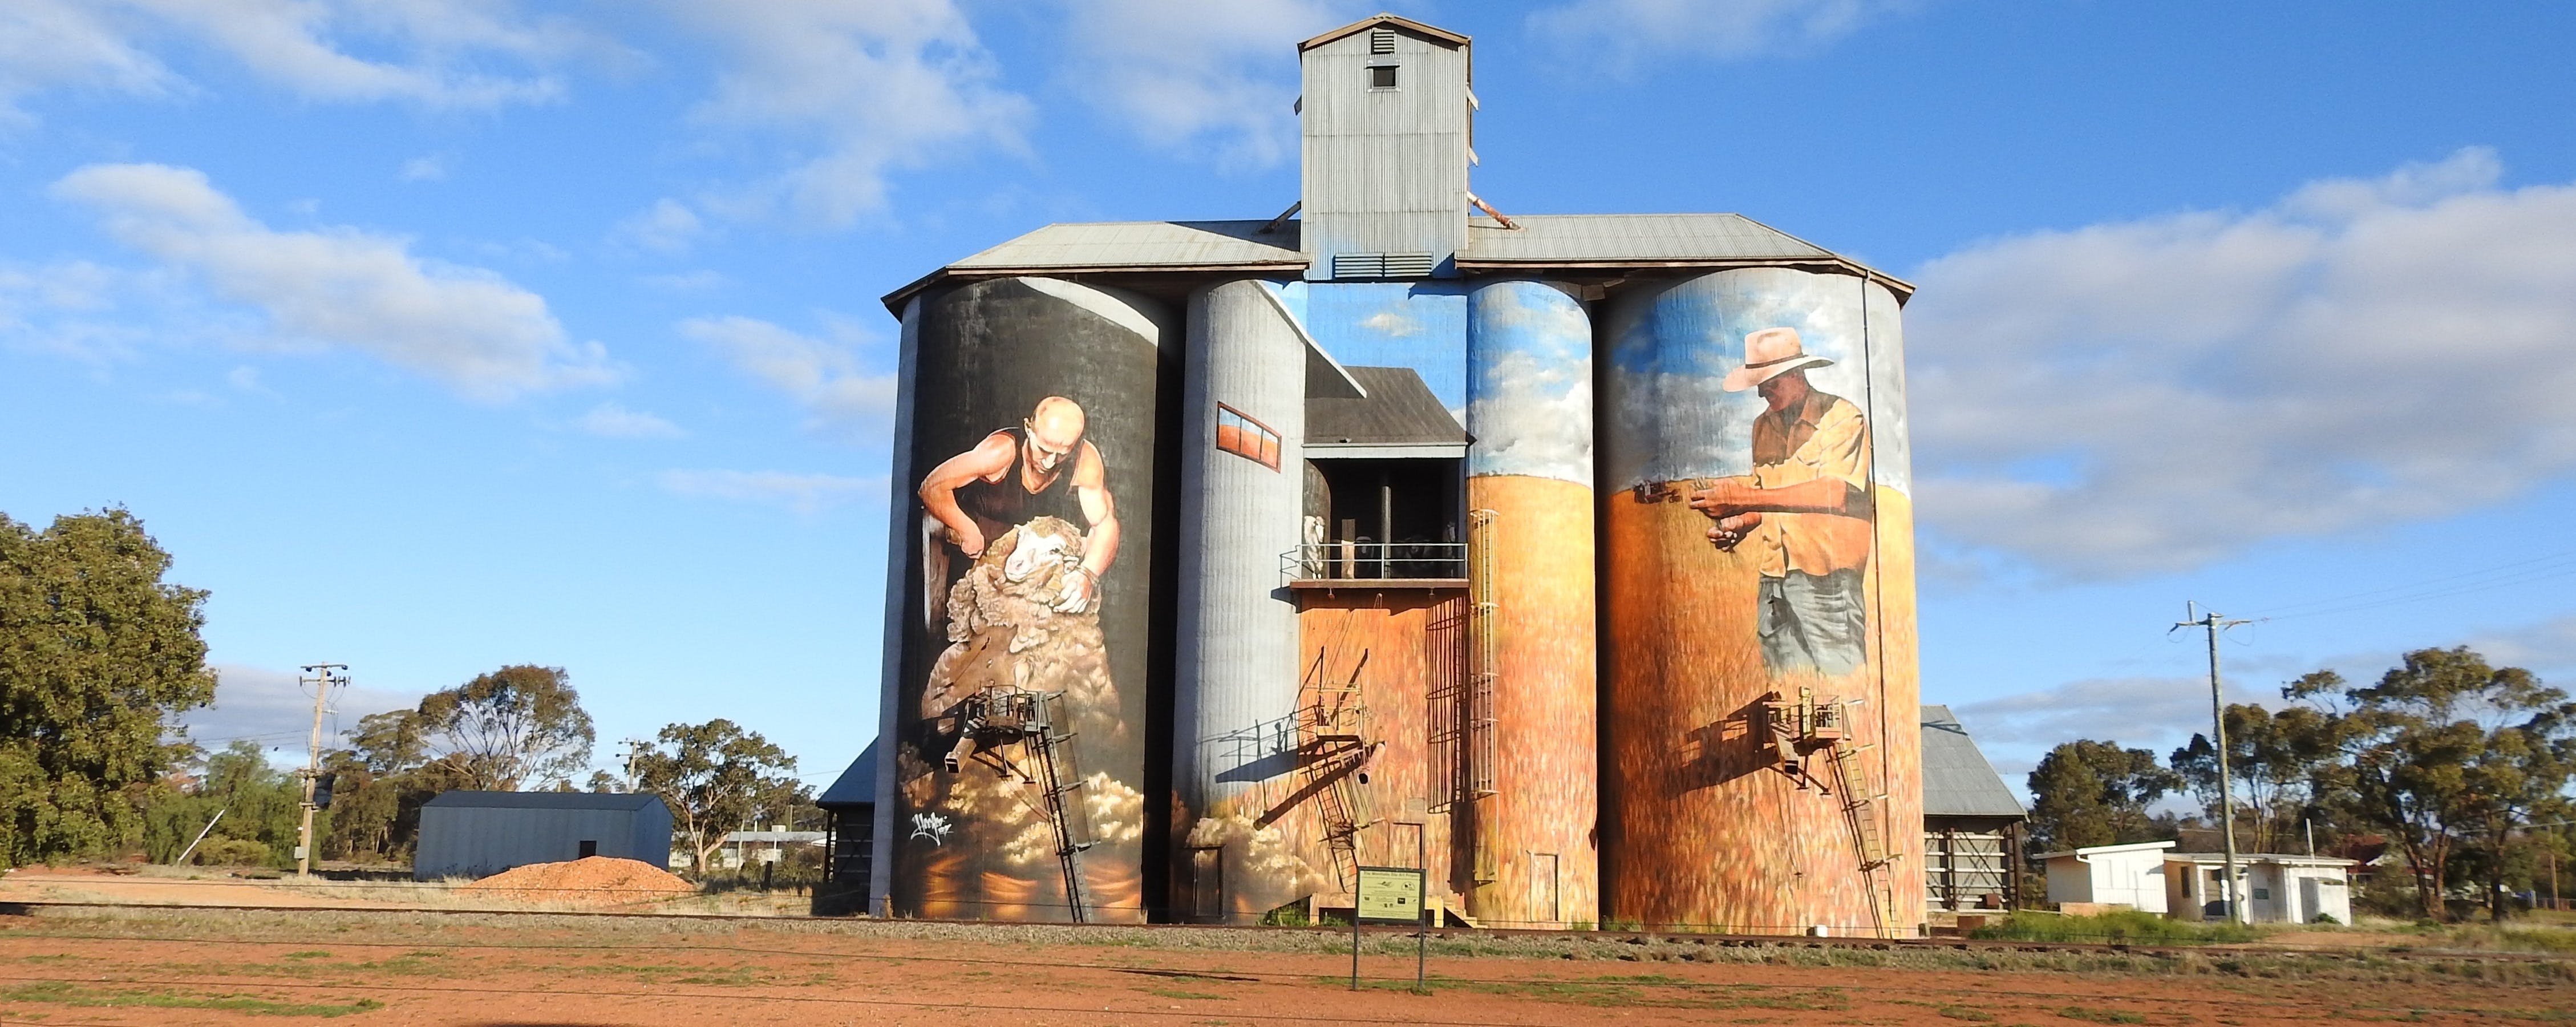 Riverina Outdoor Art Trail - Tourism Gold Coast